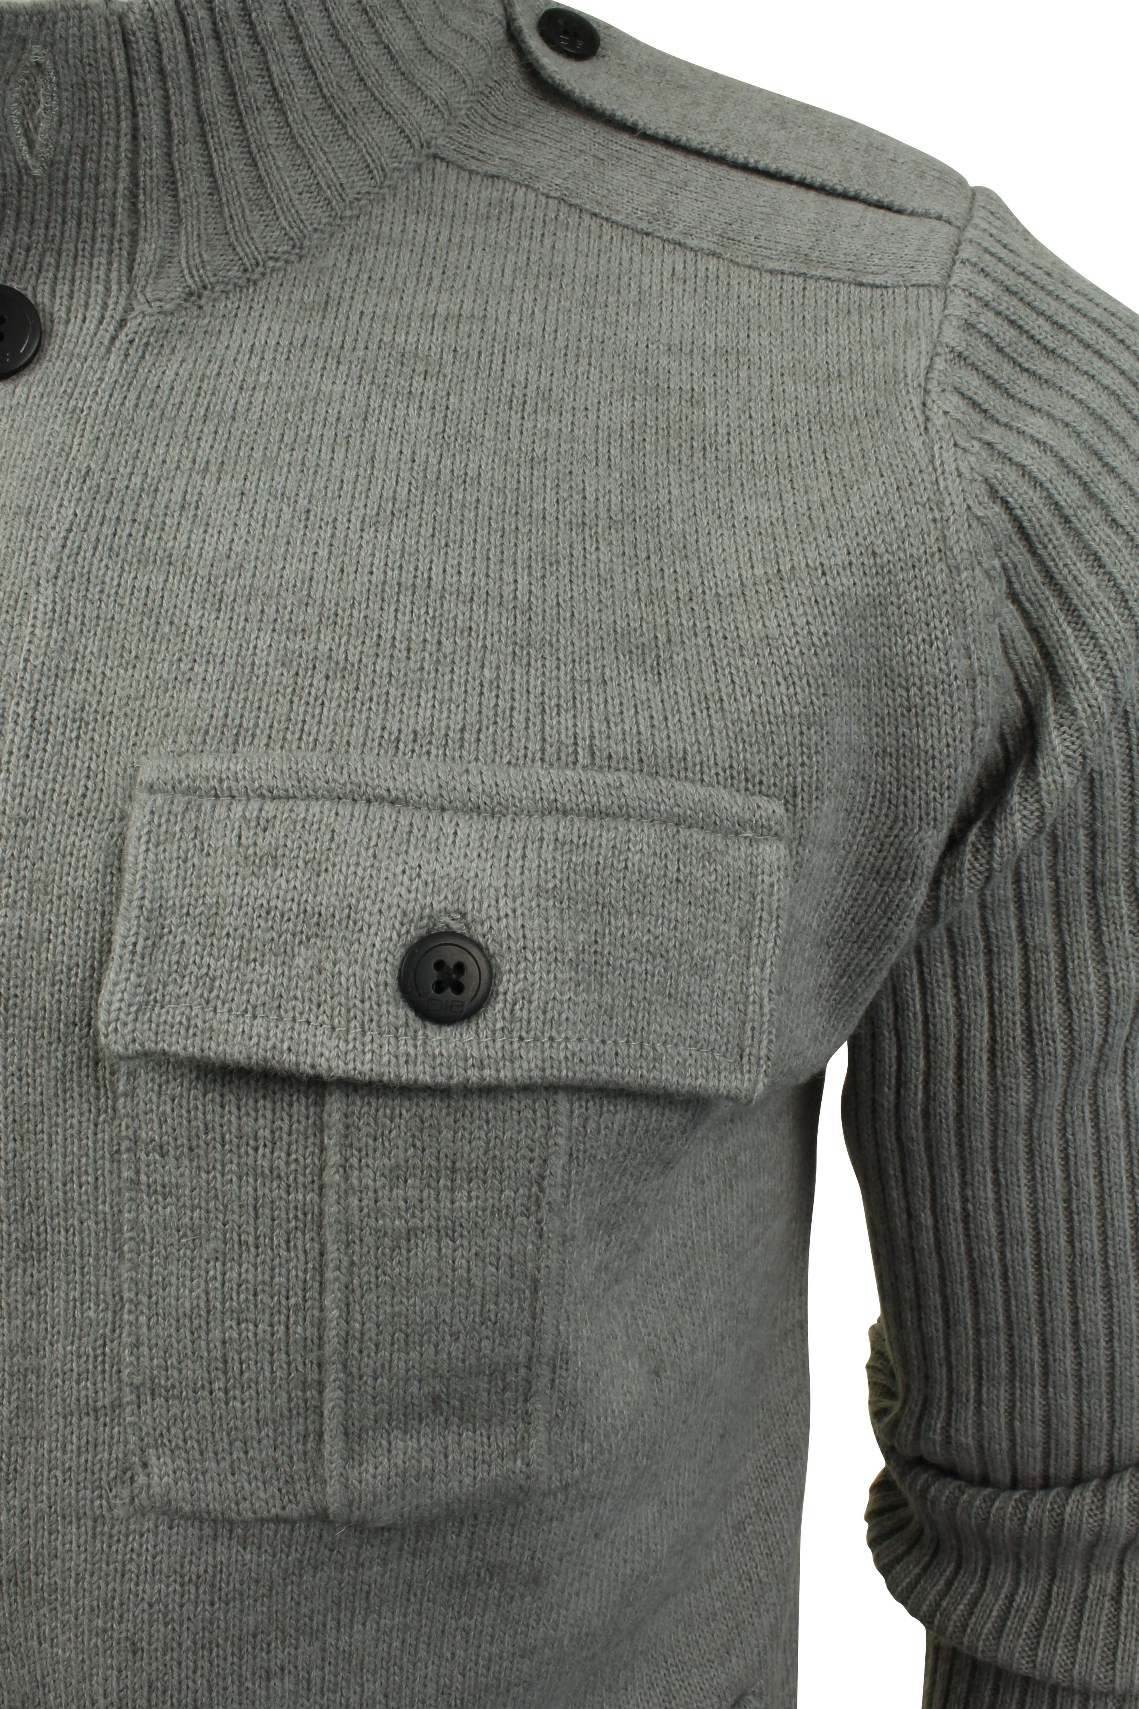 Mens Military Style Cardigan/ Jumper by Tokyo Laundry 'Brooke ...